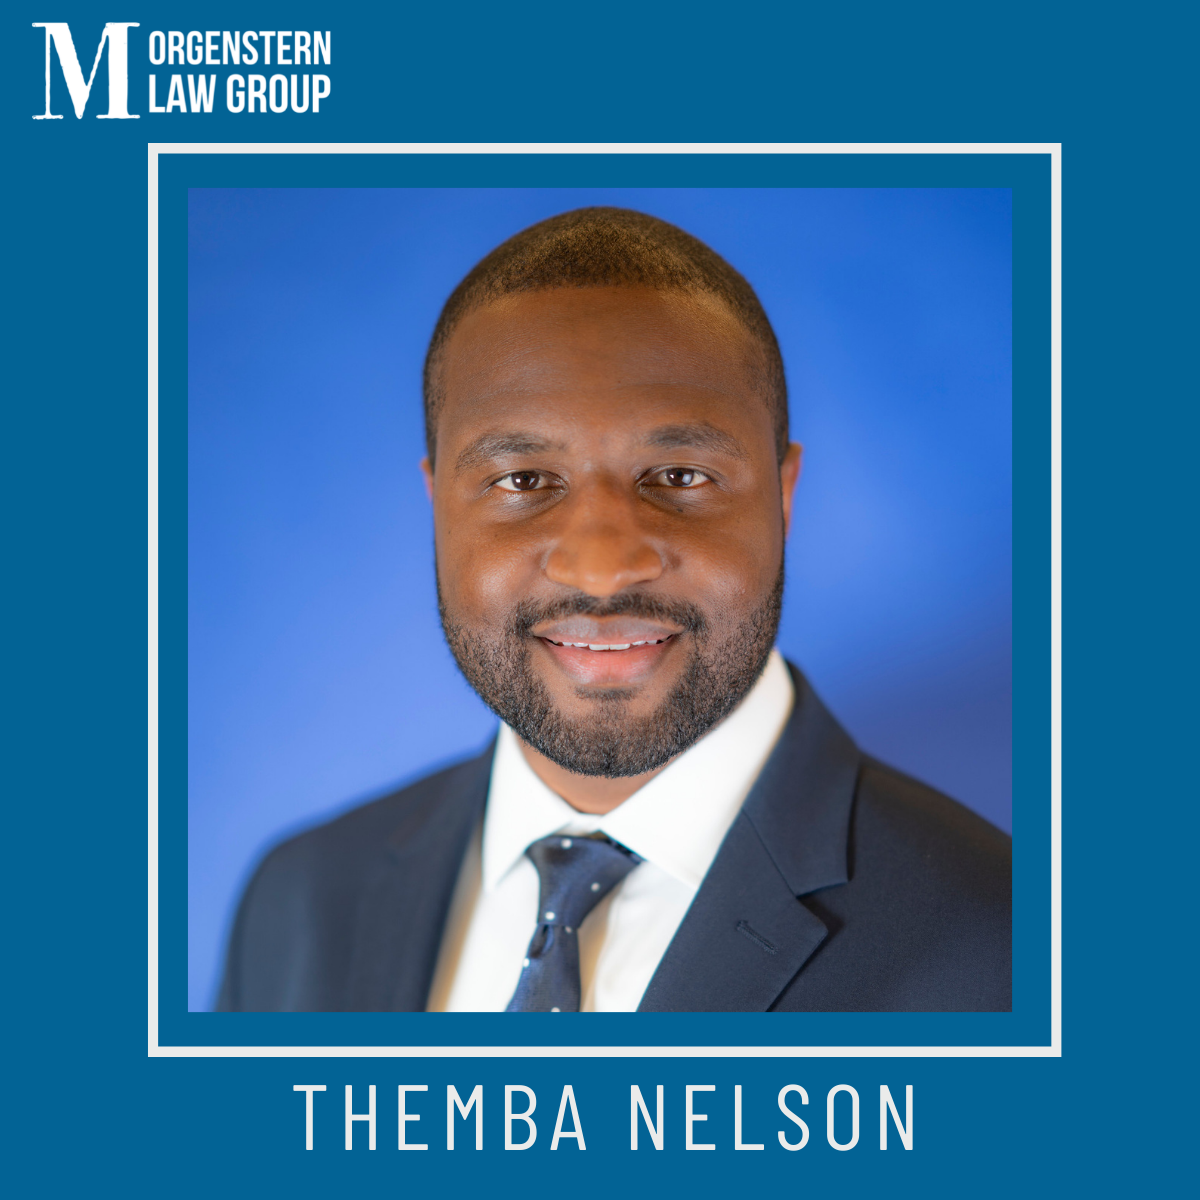 themba nelson linkedin.png